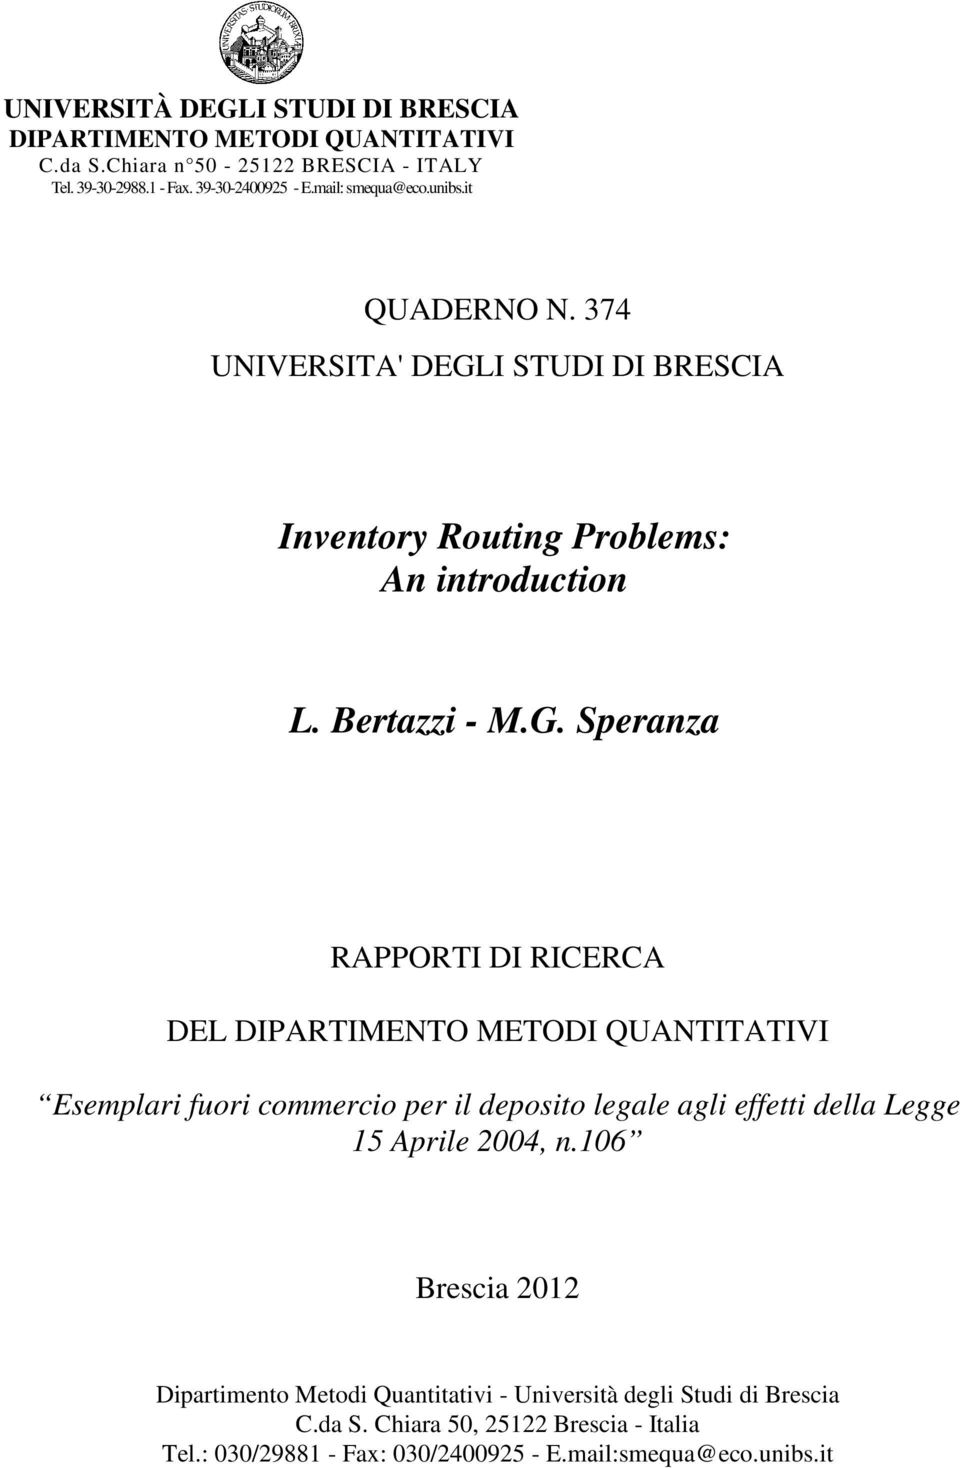 I STUDI DI BRESCIA Inventory Routing Problems: An introduction L. Bertazzi - M.G.